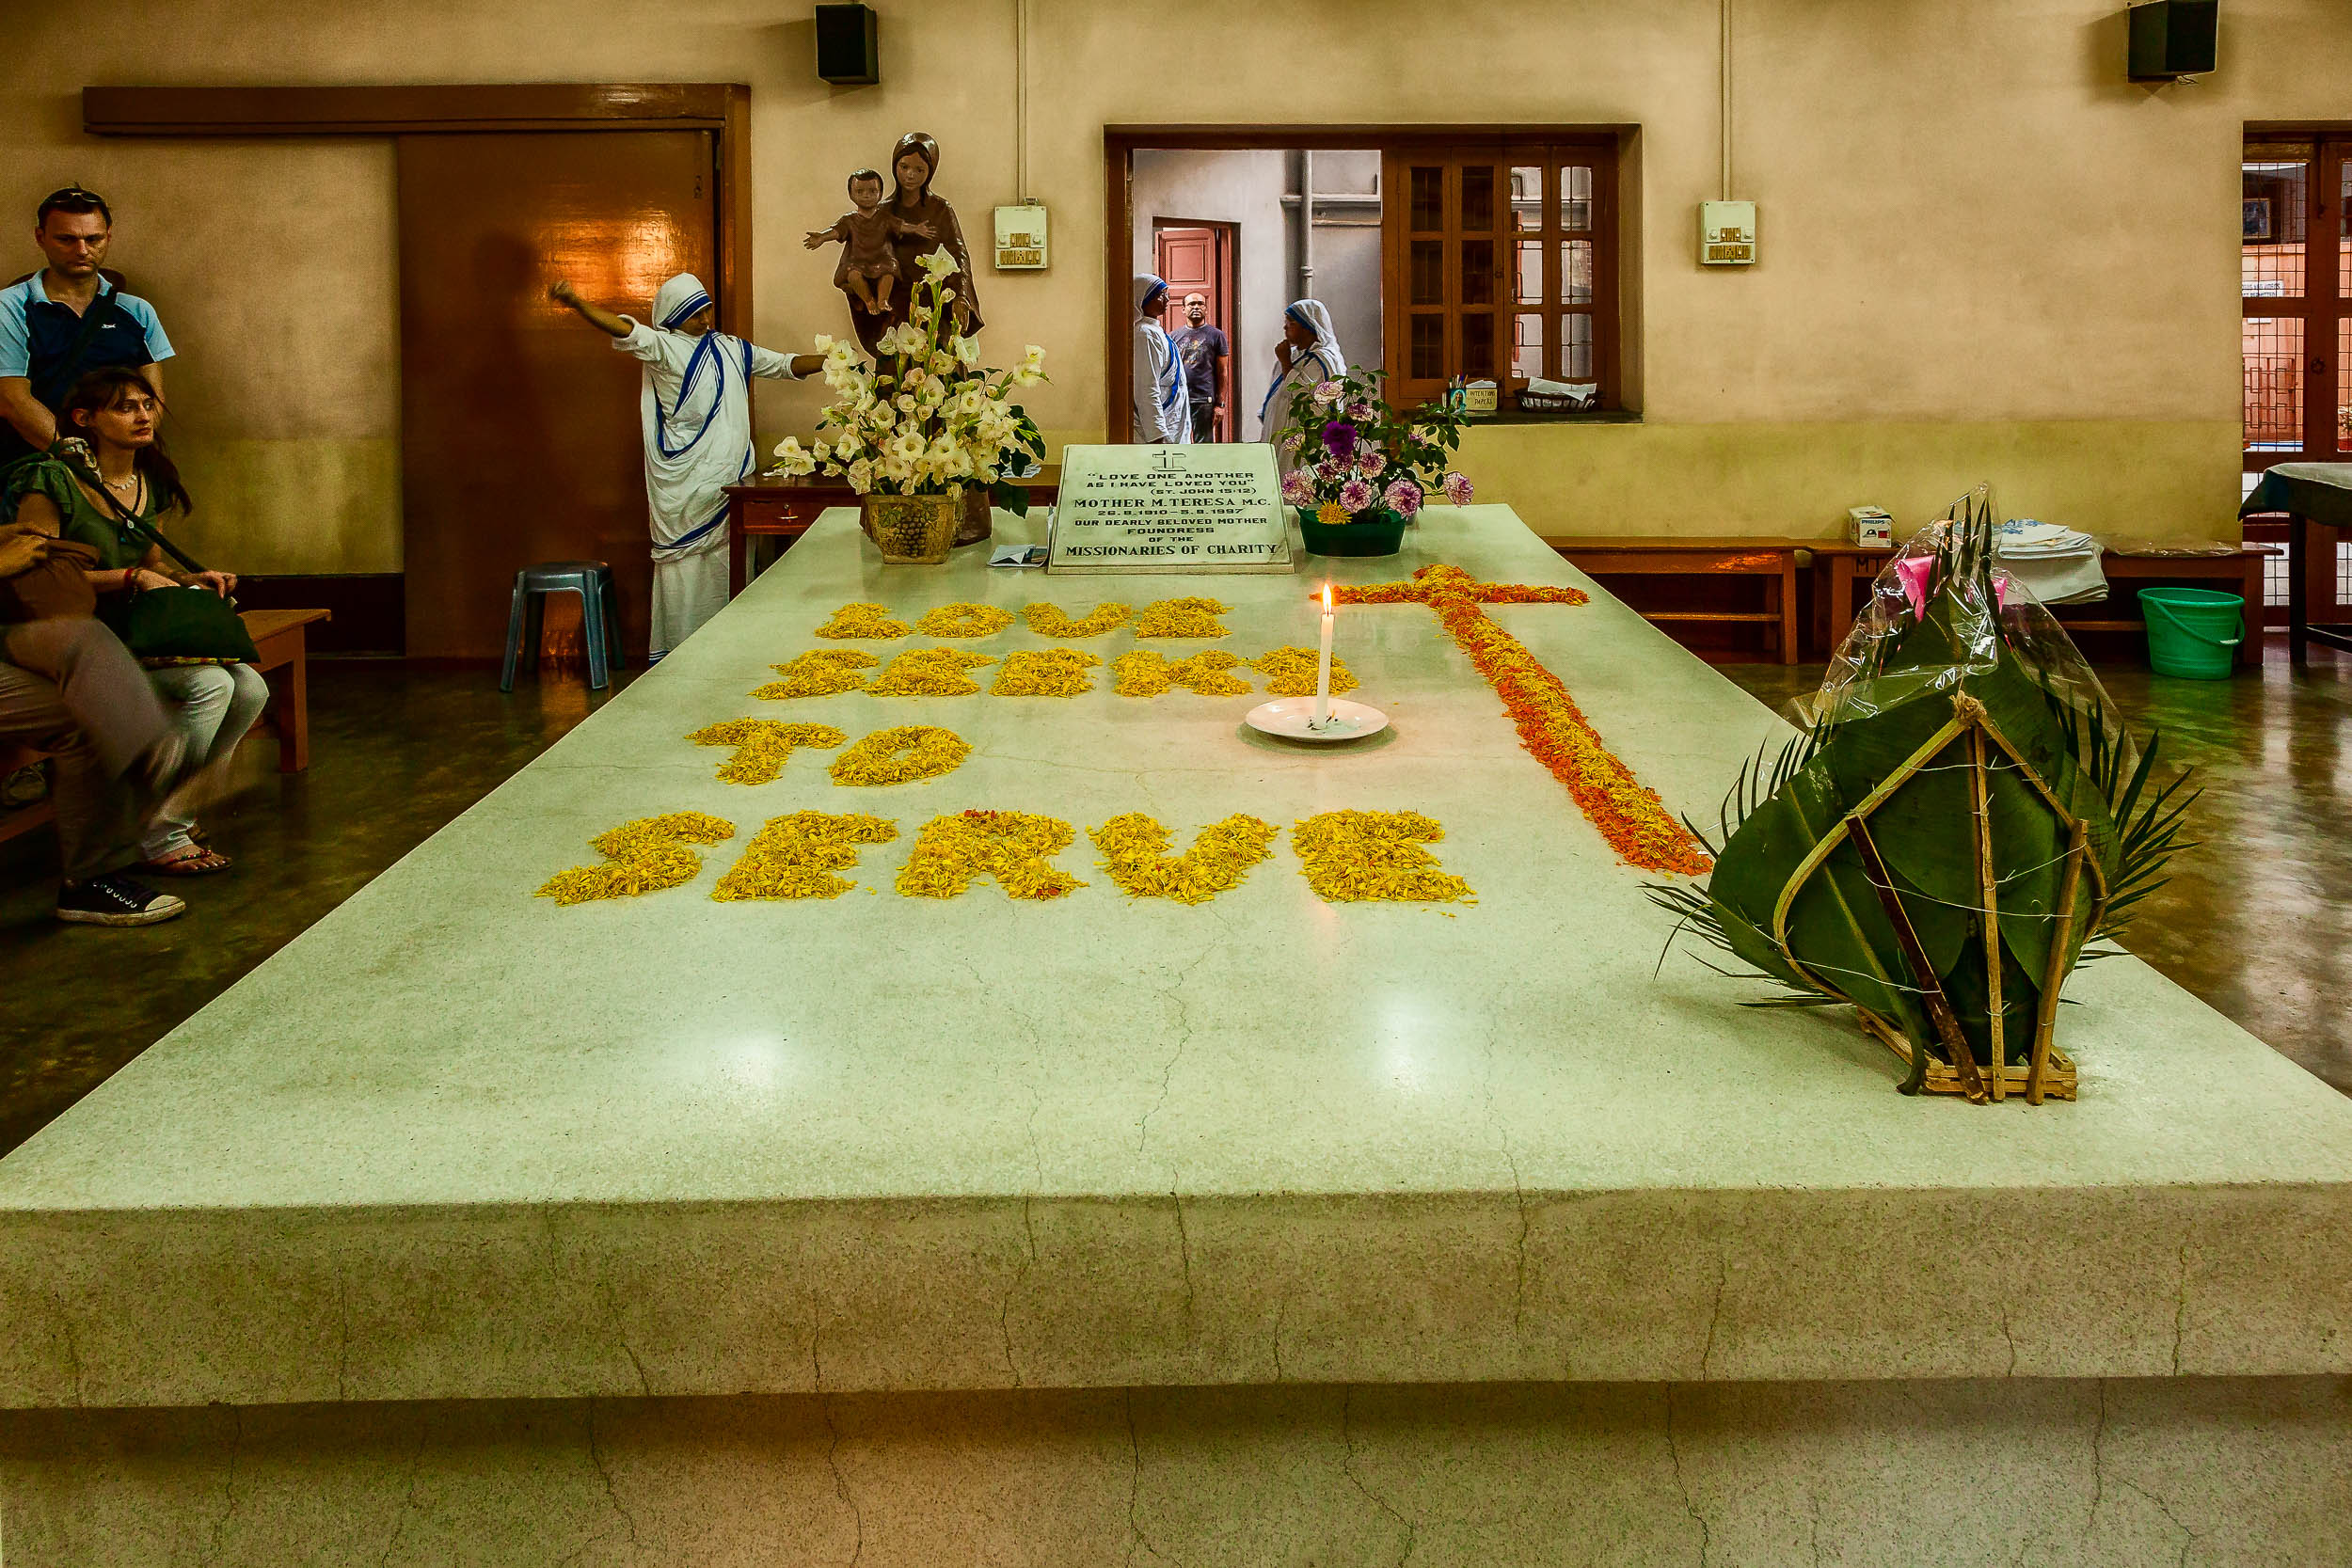 The tomb of Mother Teresa in Kolkata, India